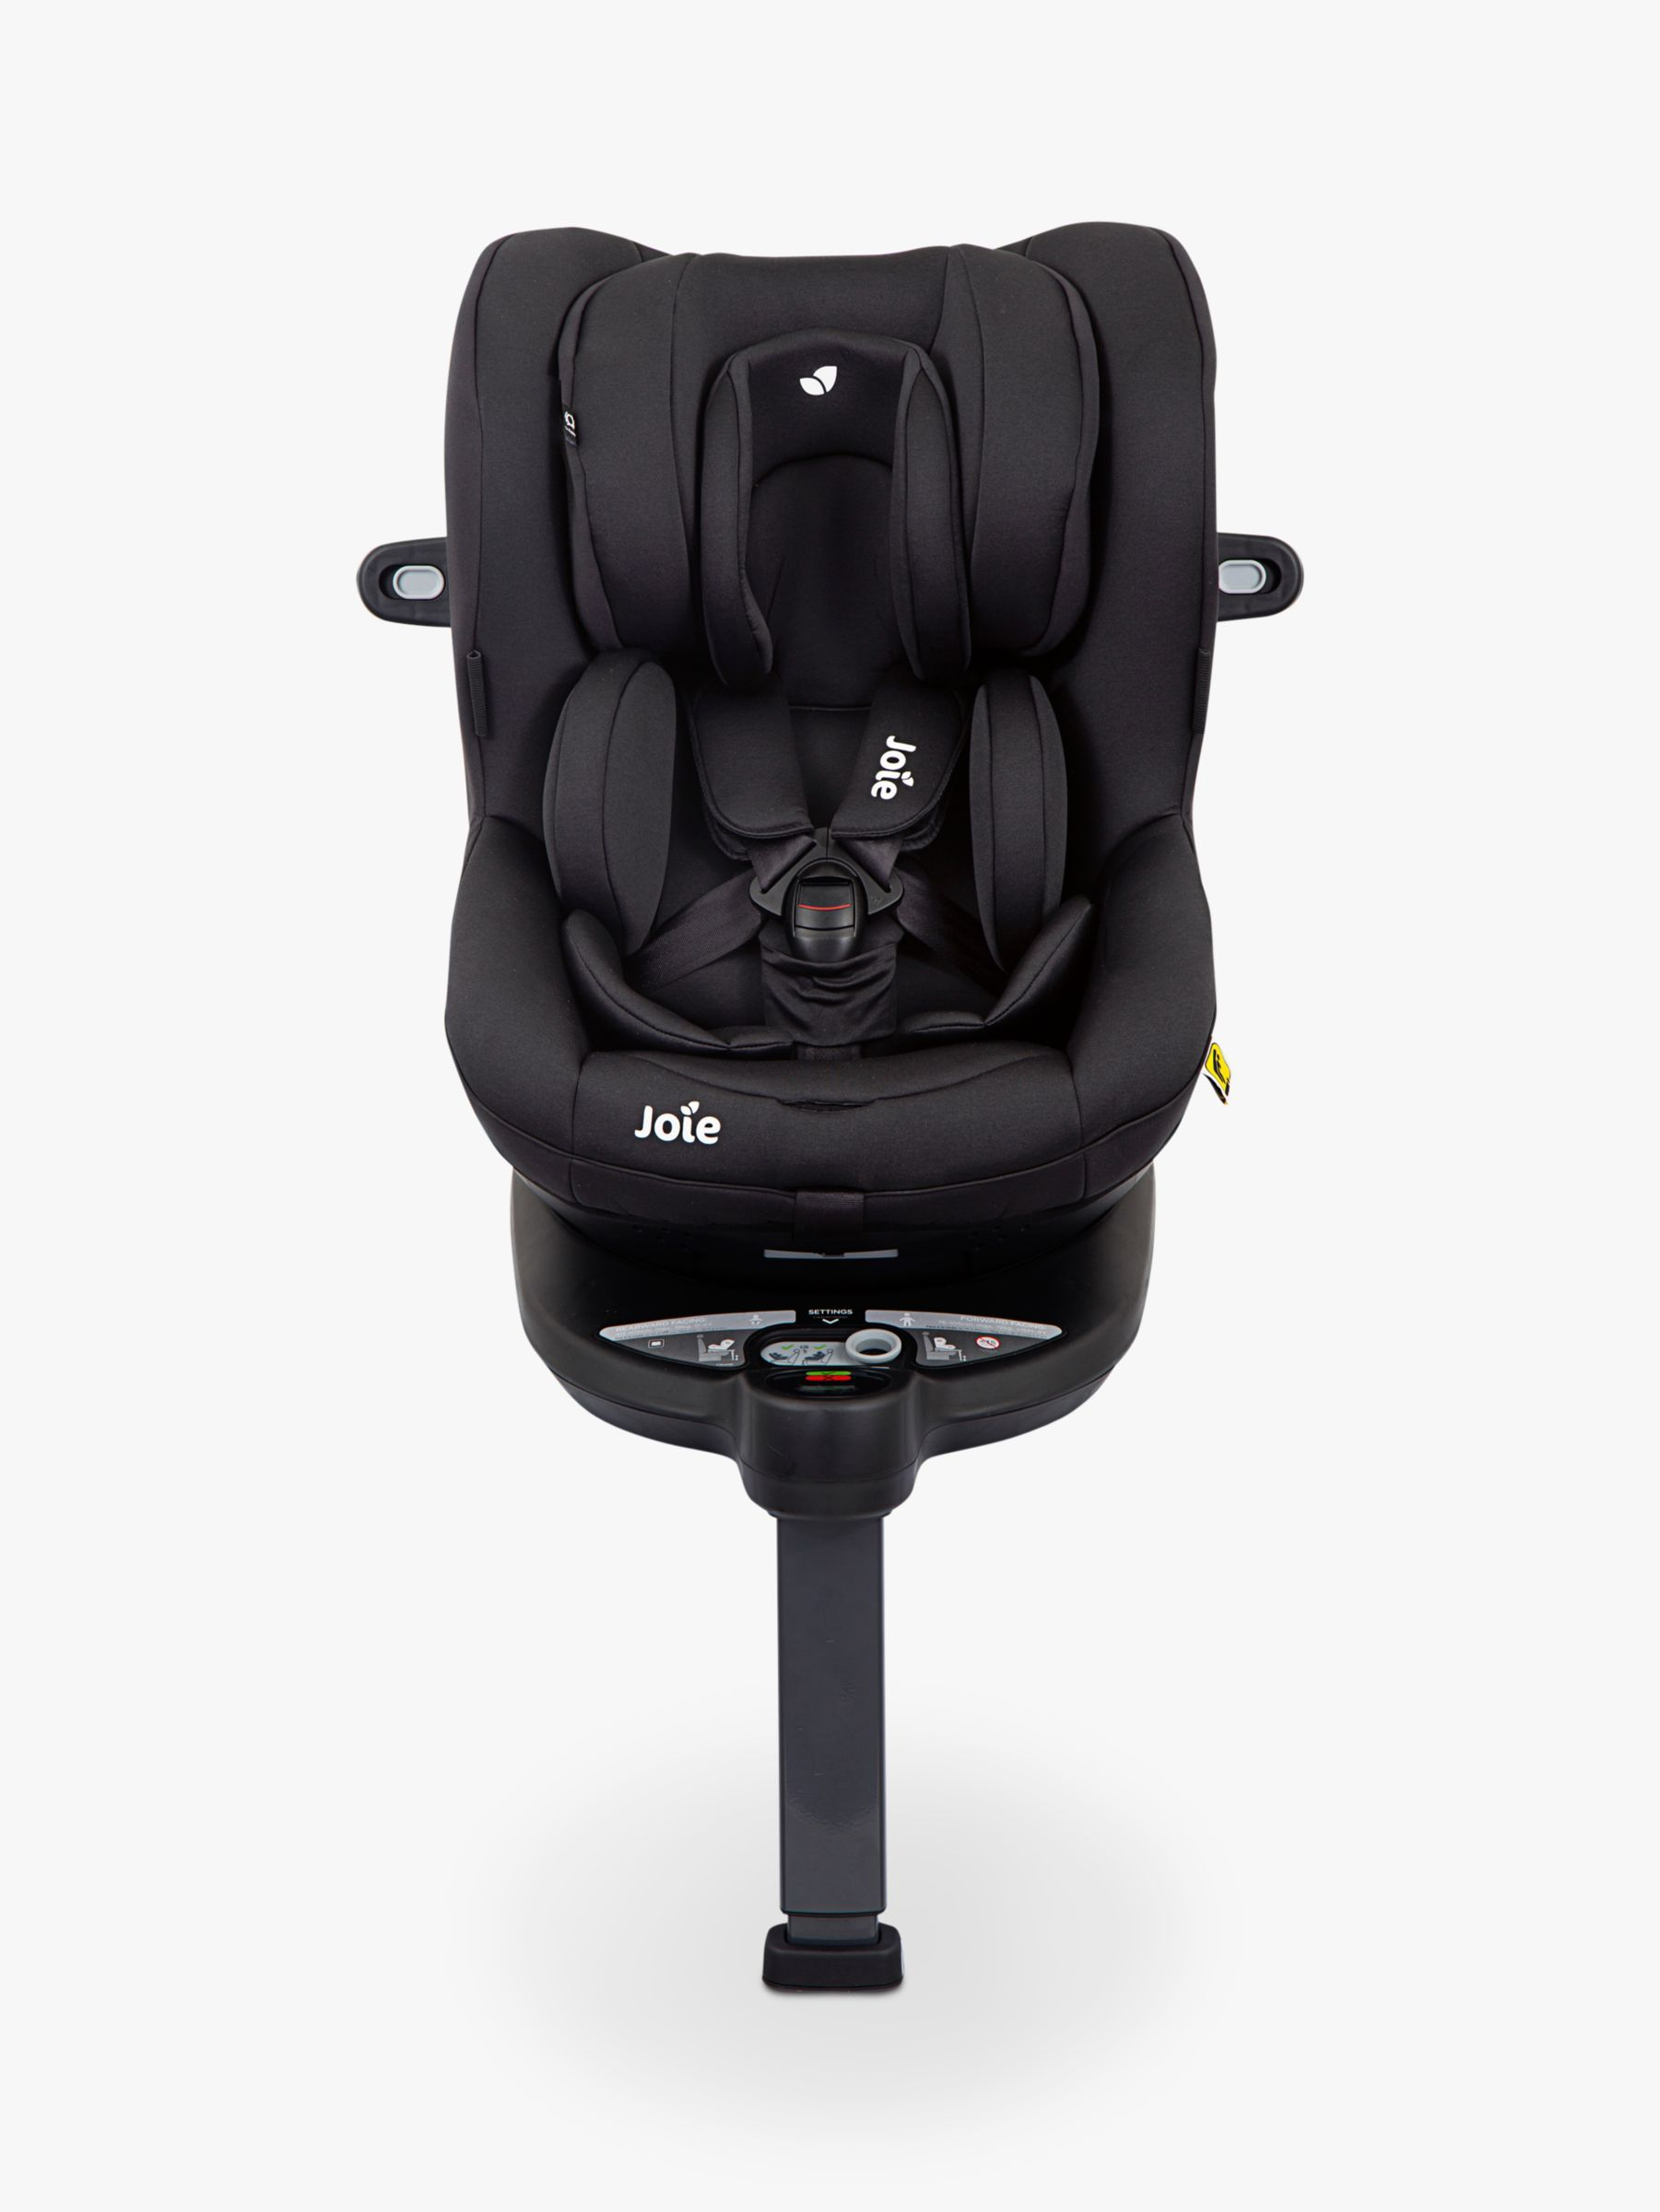 Joie Baby iSpin 360 Group 0+/1 iSize Car Seat, Coal in